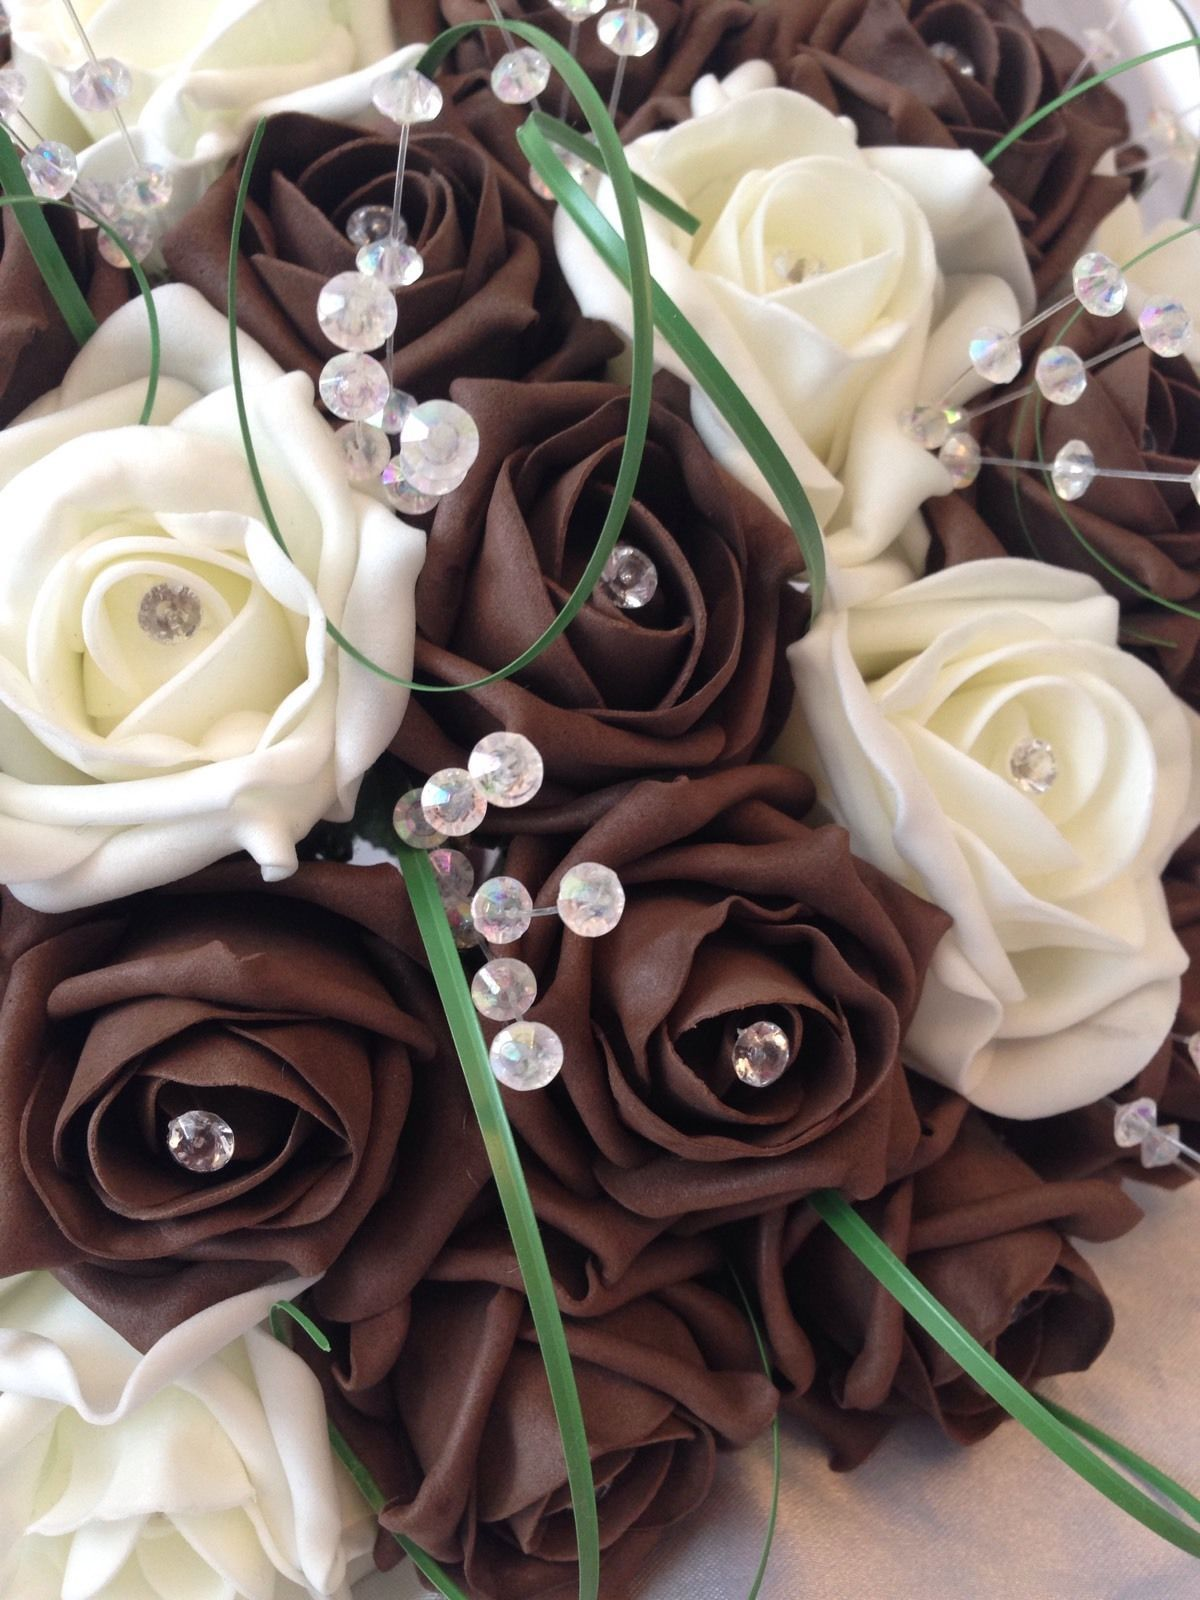 Wedding artificial flowers rose bouquets chocolate brown ivory bride wedding artificial flowers rose bouquets chocolate brown ivory bride corsage izmirmasajfo